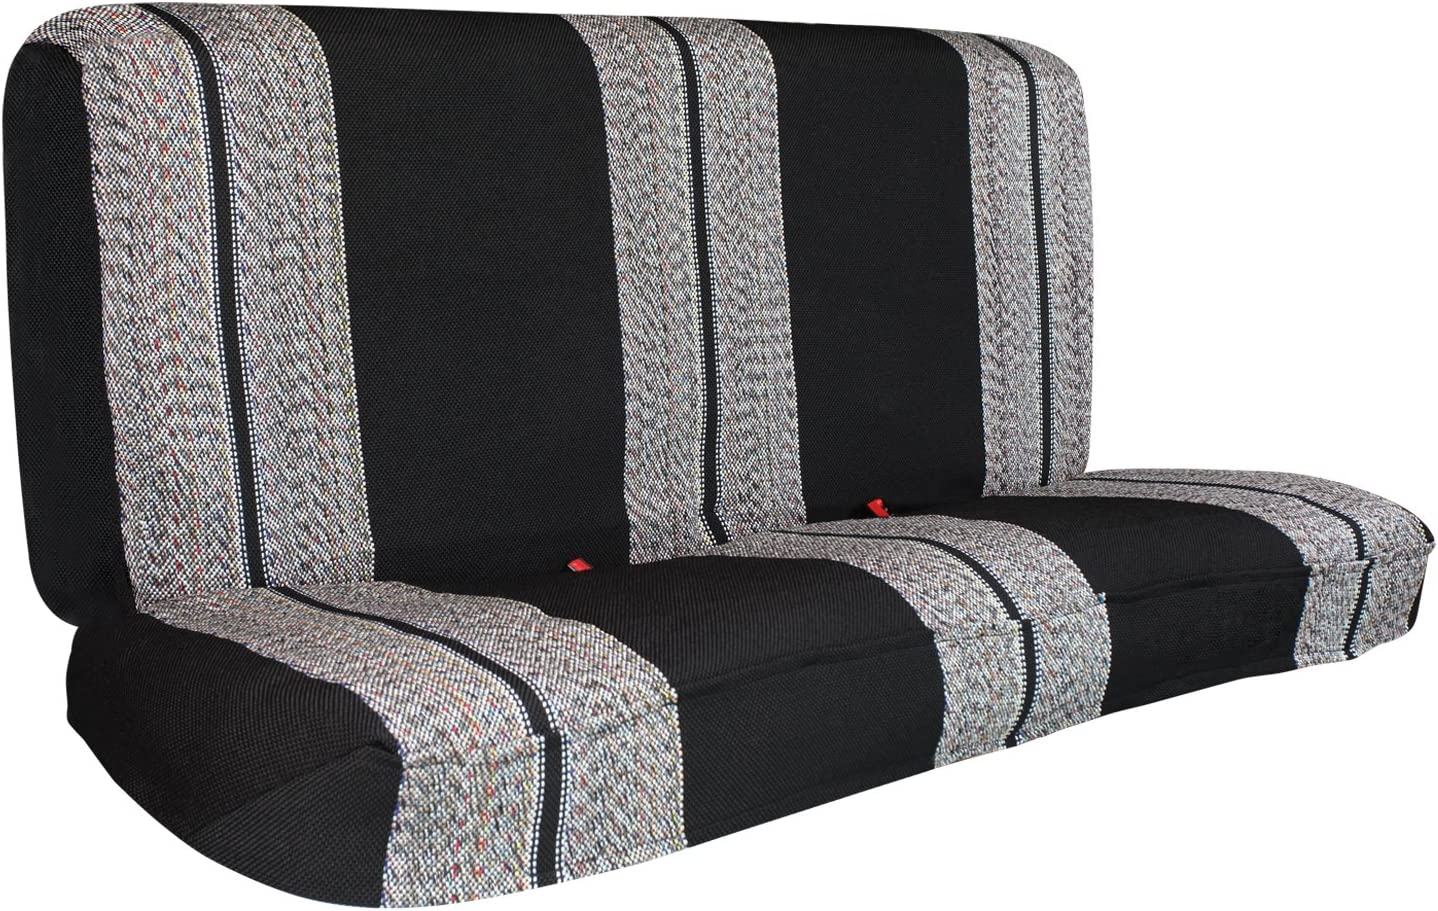 Leader Accessories Saddle Blanket Black Full Size Pickup Trucks Bench Seat Cover Universal Work with Chevrolet Dodge Ford Bench Seats